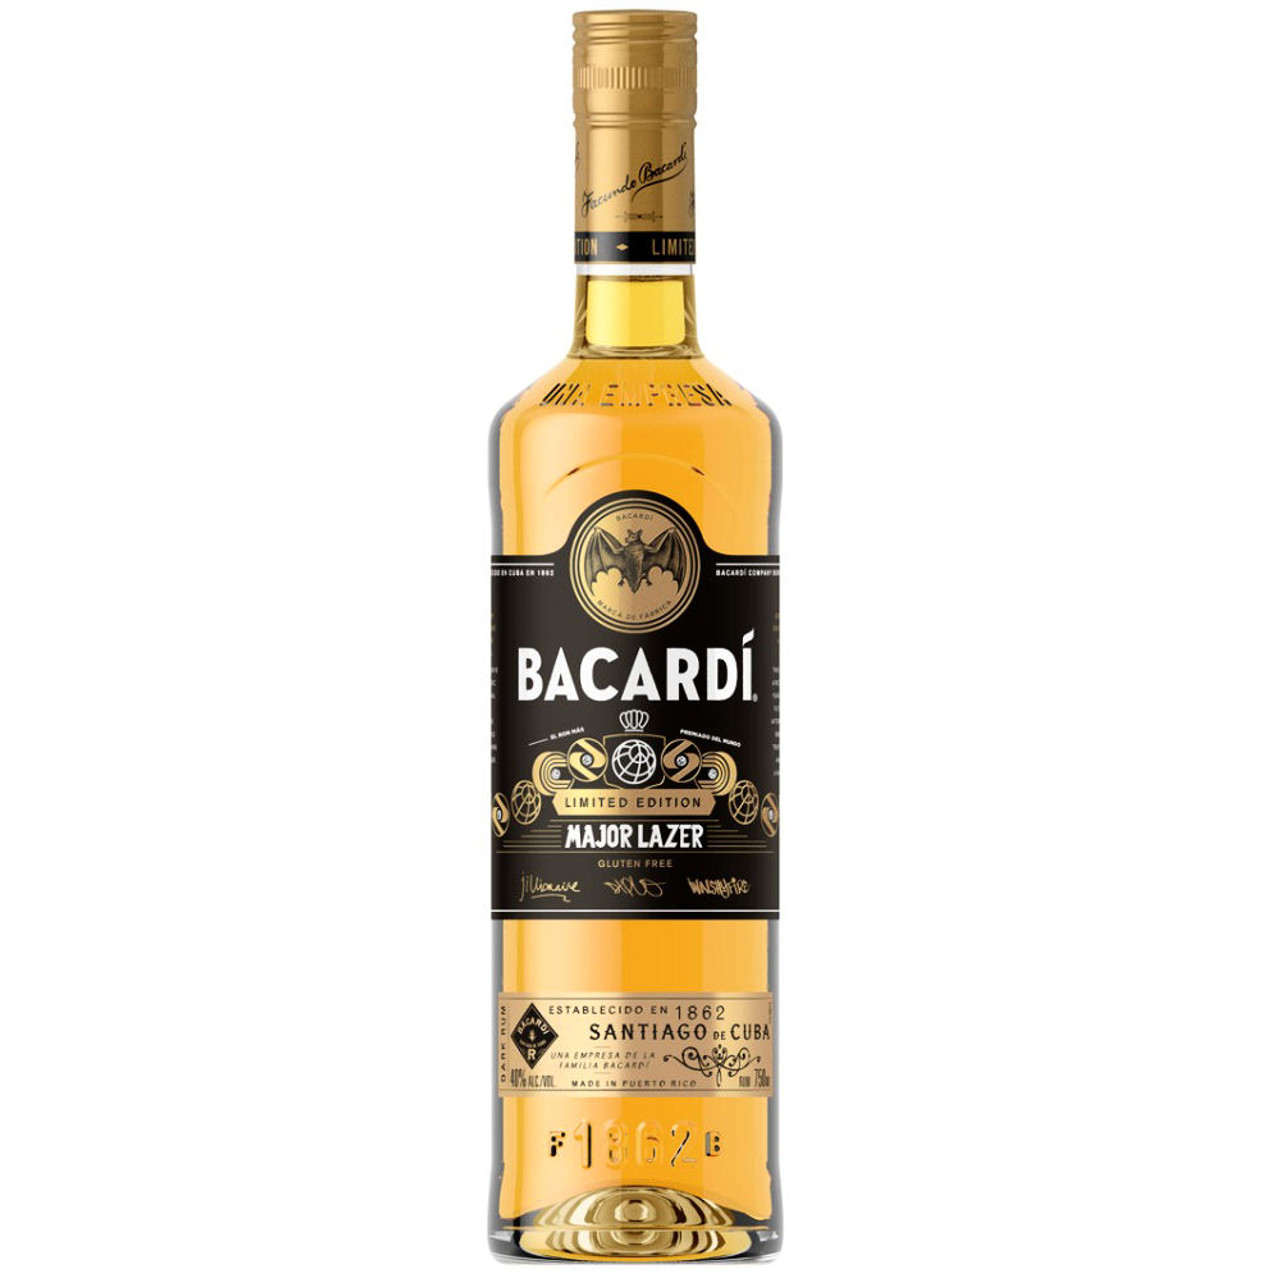 Bacardi Limited Edition Major Lazer Rum 750ml